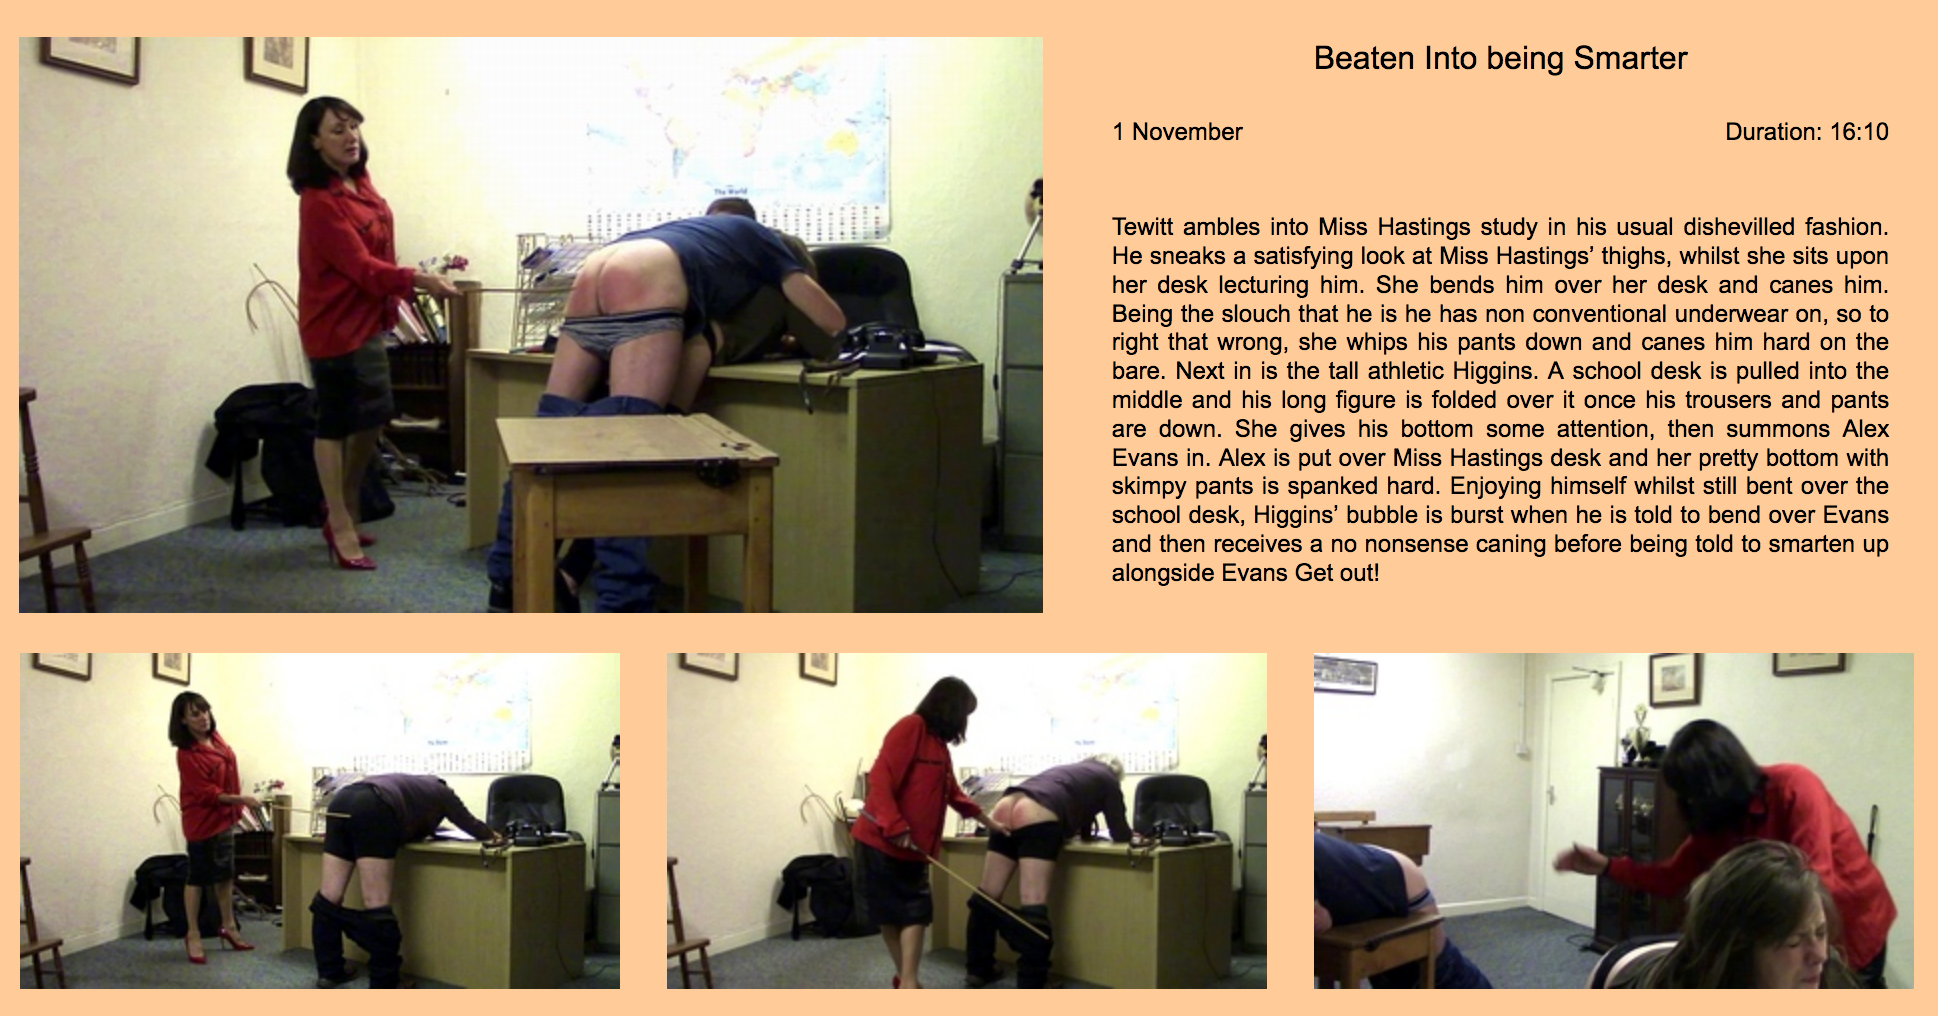 Tewitt ambles into Miss Hastings study in his usual dishevilled fashion. He sneaks a satisfying look at Miss Hastings' thighs, whilst she sits upon her desk lecturing him. She bends him over her desk and canes him. Being the slouch that he is he has non conventional underwear on, so to right that wrong, she whips his pants down and canes him hard on the bare. Next in is the tall athletic Higgins. A school desk is pulled into the middle and his long figure is folded over it once his trousers and pants are down. She gives his bottom some attention, then summons Alex Evans in. Alex is put over Miss Hastings desk and her pretty bottom with skimpy pants is spanked hard. Enjoying himself whilst still bent over the school desk, Higgins' bubble is burst when he is told to bend over Evans and then receives a no nonsense caning before being told to smarten up alongside Evans Get out!